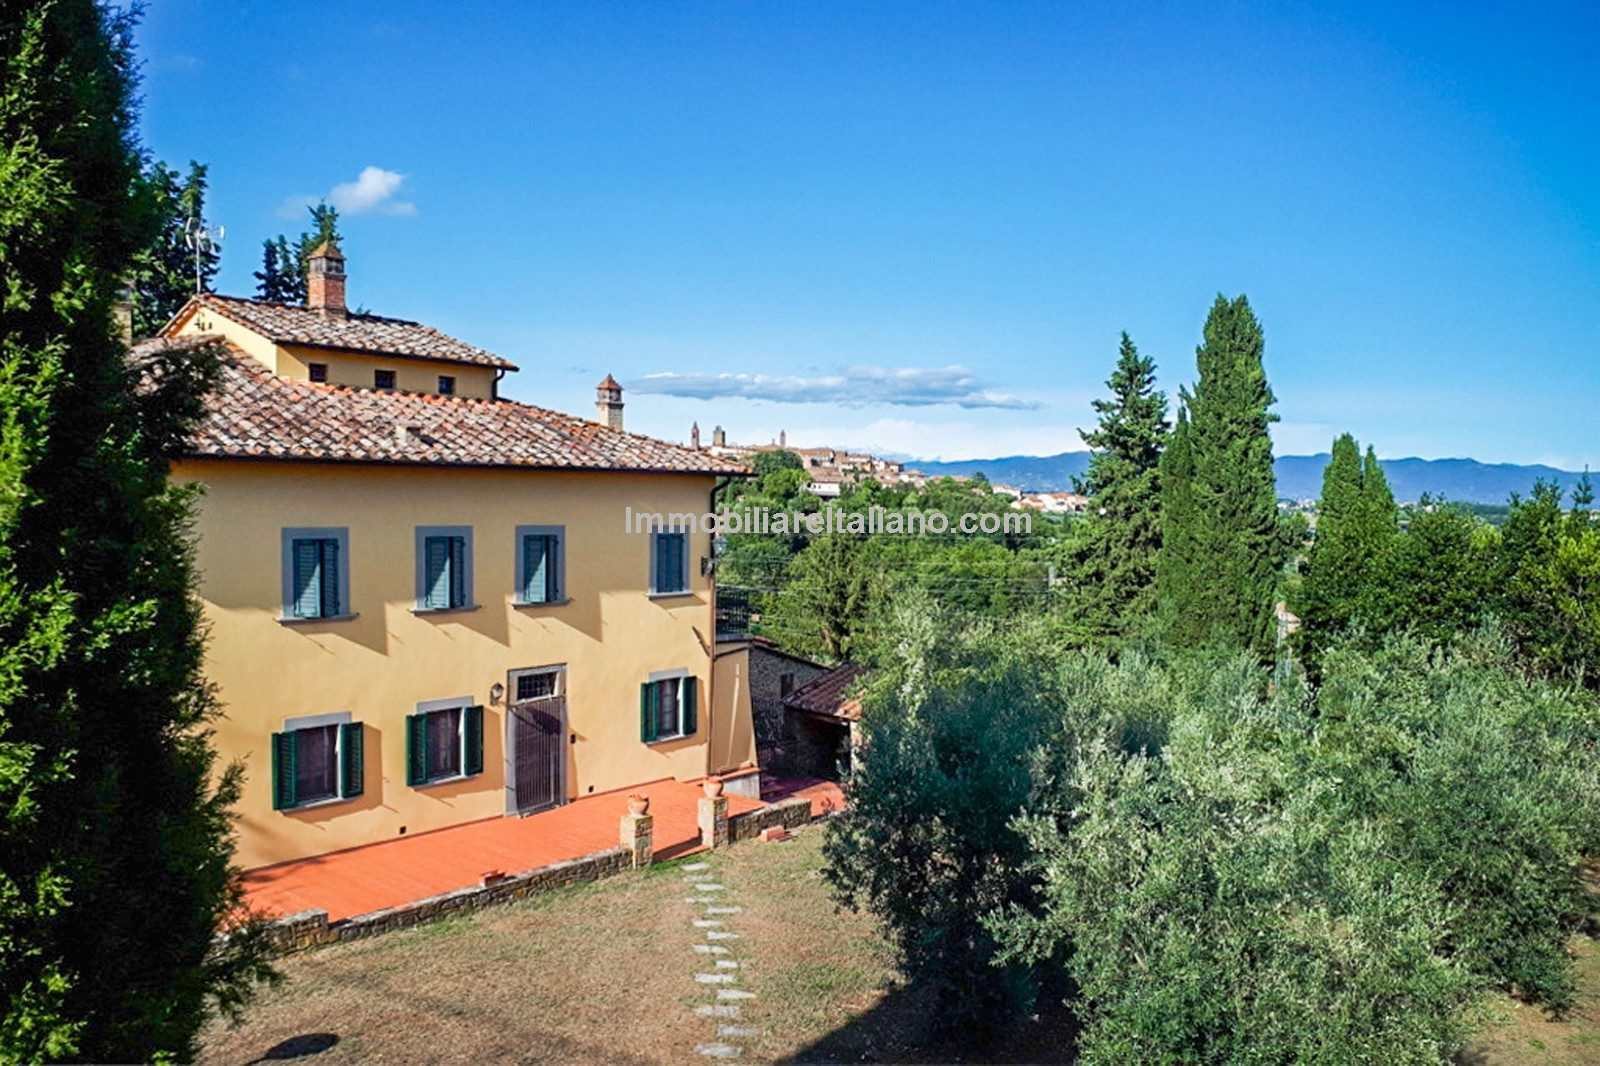 Restored 19th Century Tuscan villa with annexes and garden